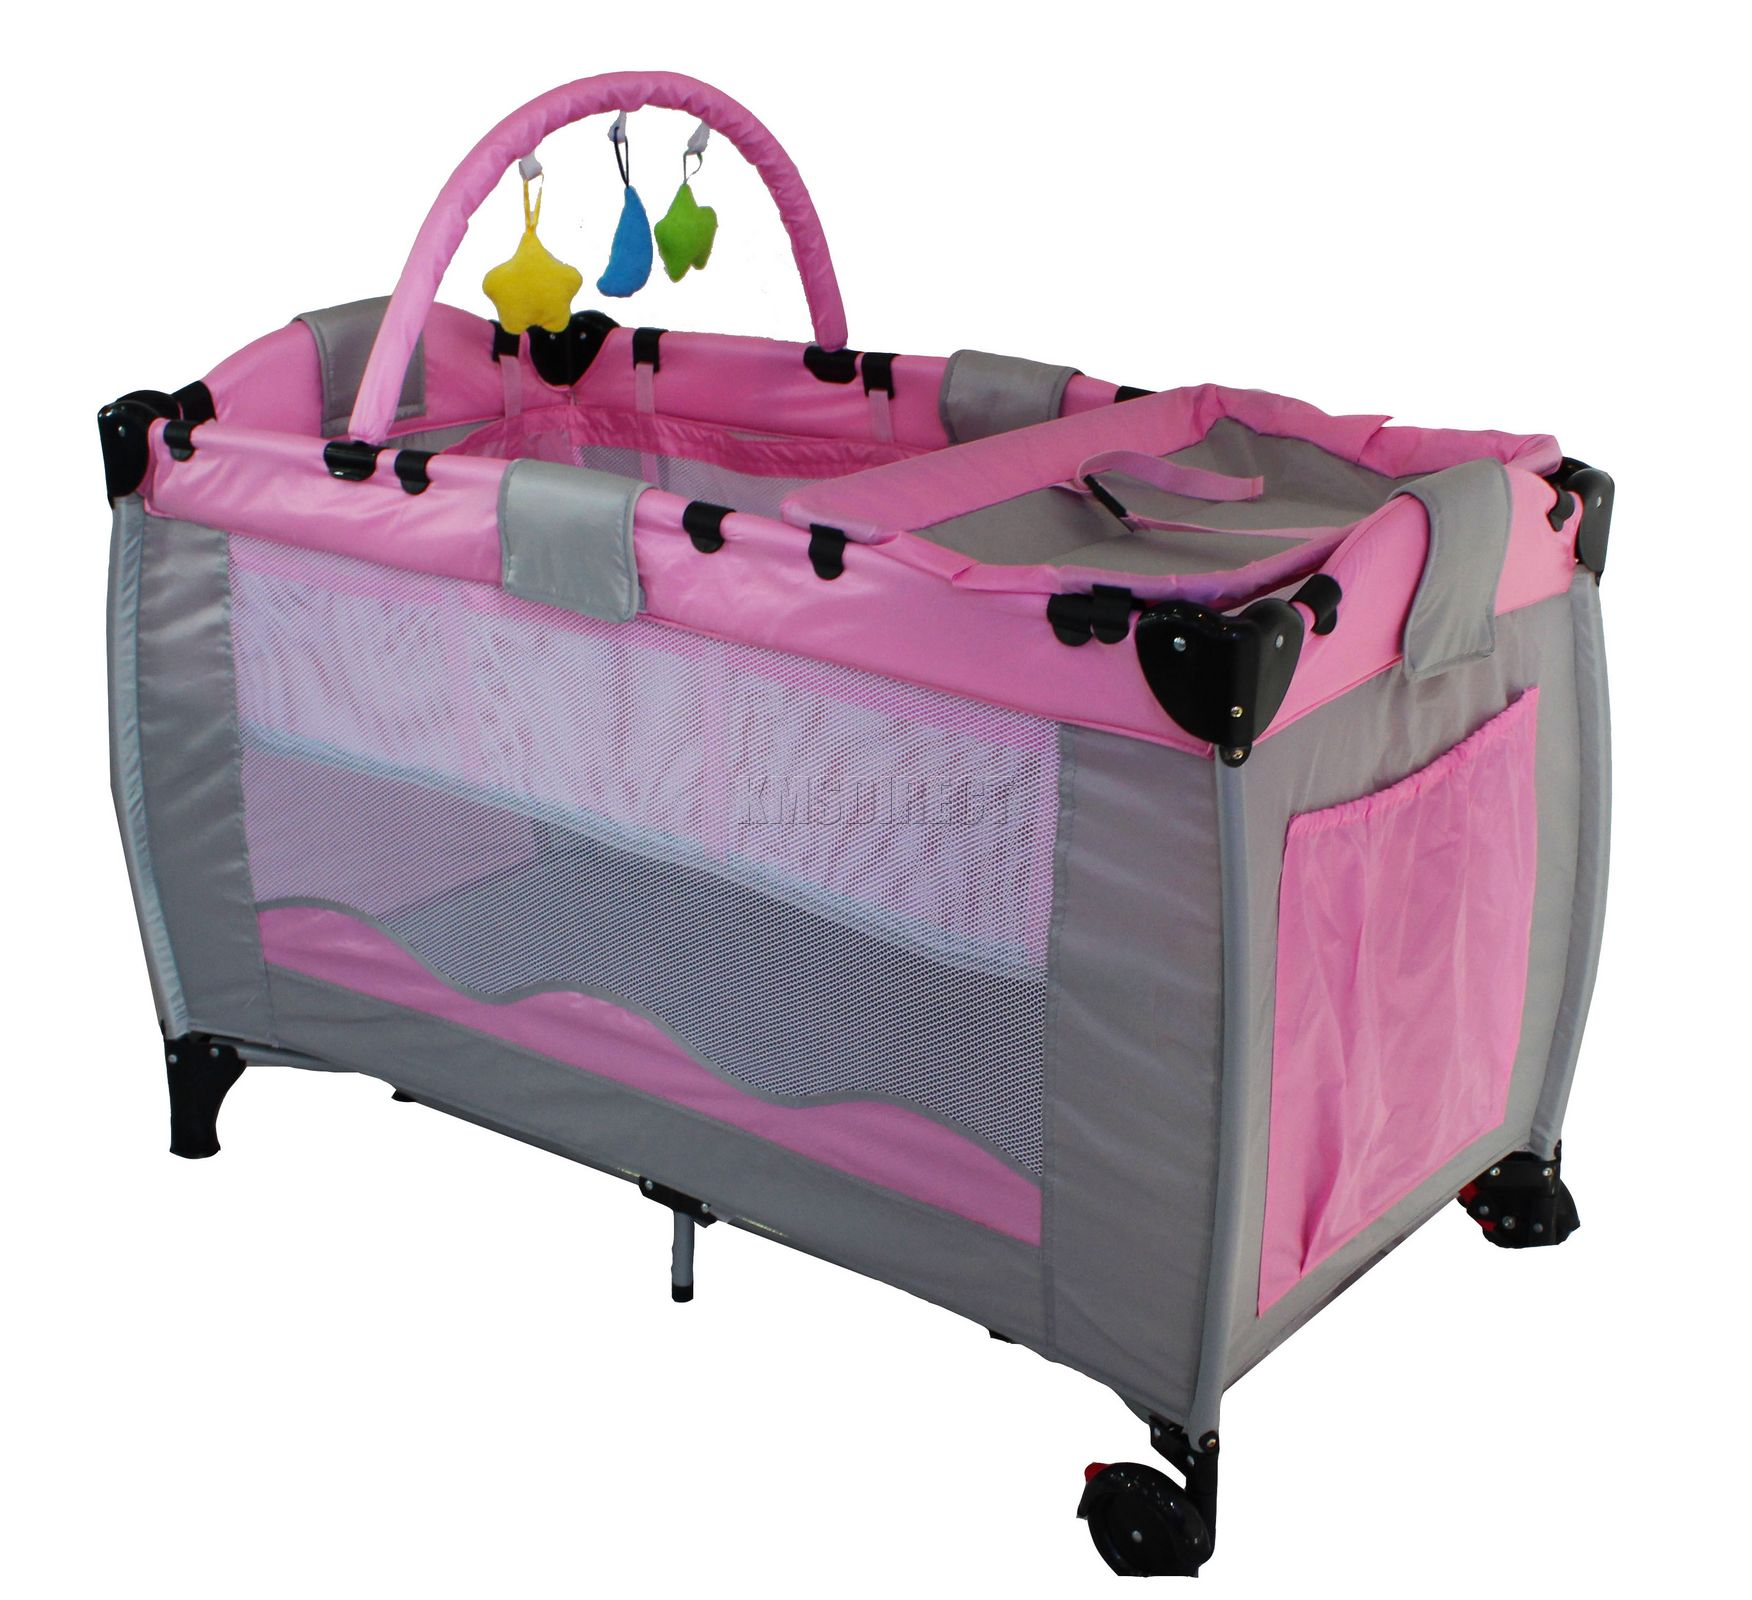 Baby Travel Toys : Pink infant baby child travel bed cot bassinet play pen